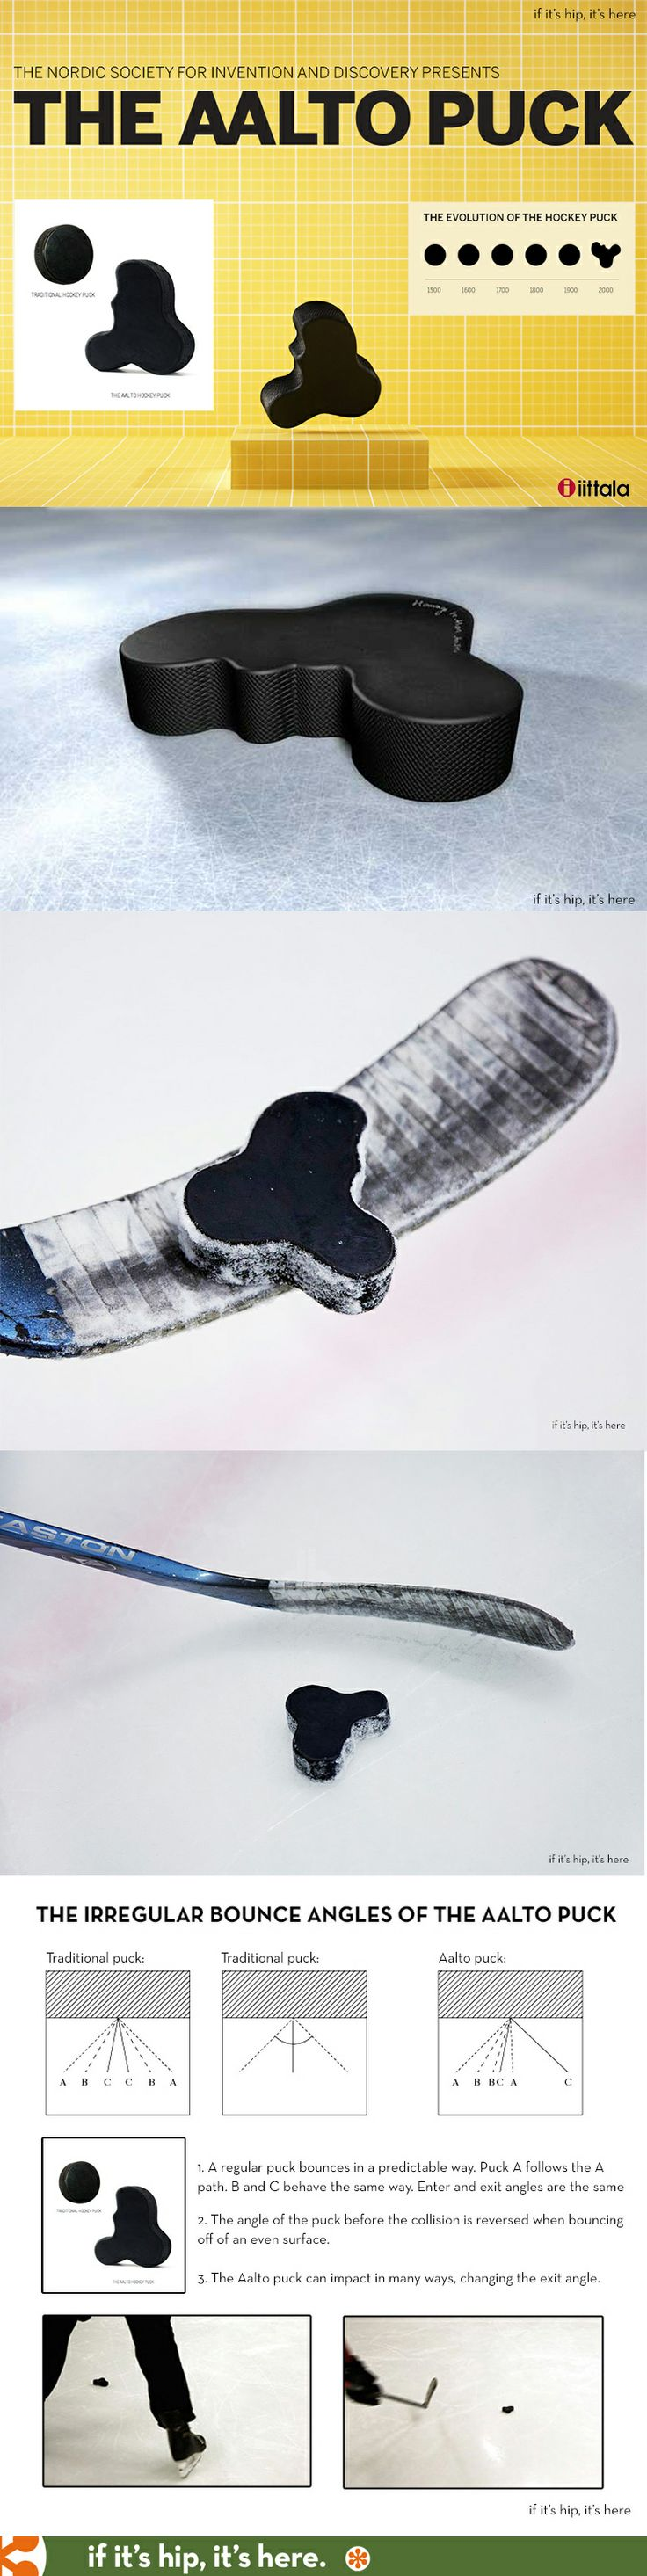 The coolest Hockey Puck ever - The Aalto Puck, inspired by Finnish designer Alvar Aalto.